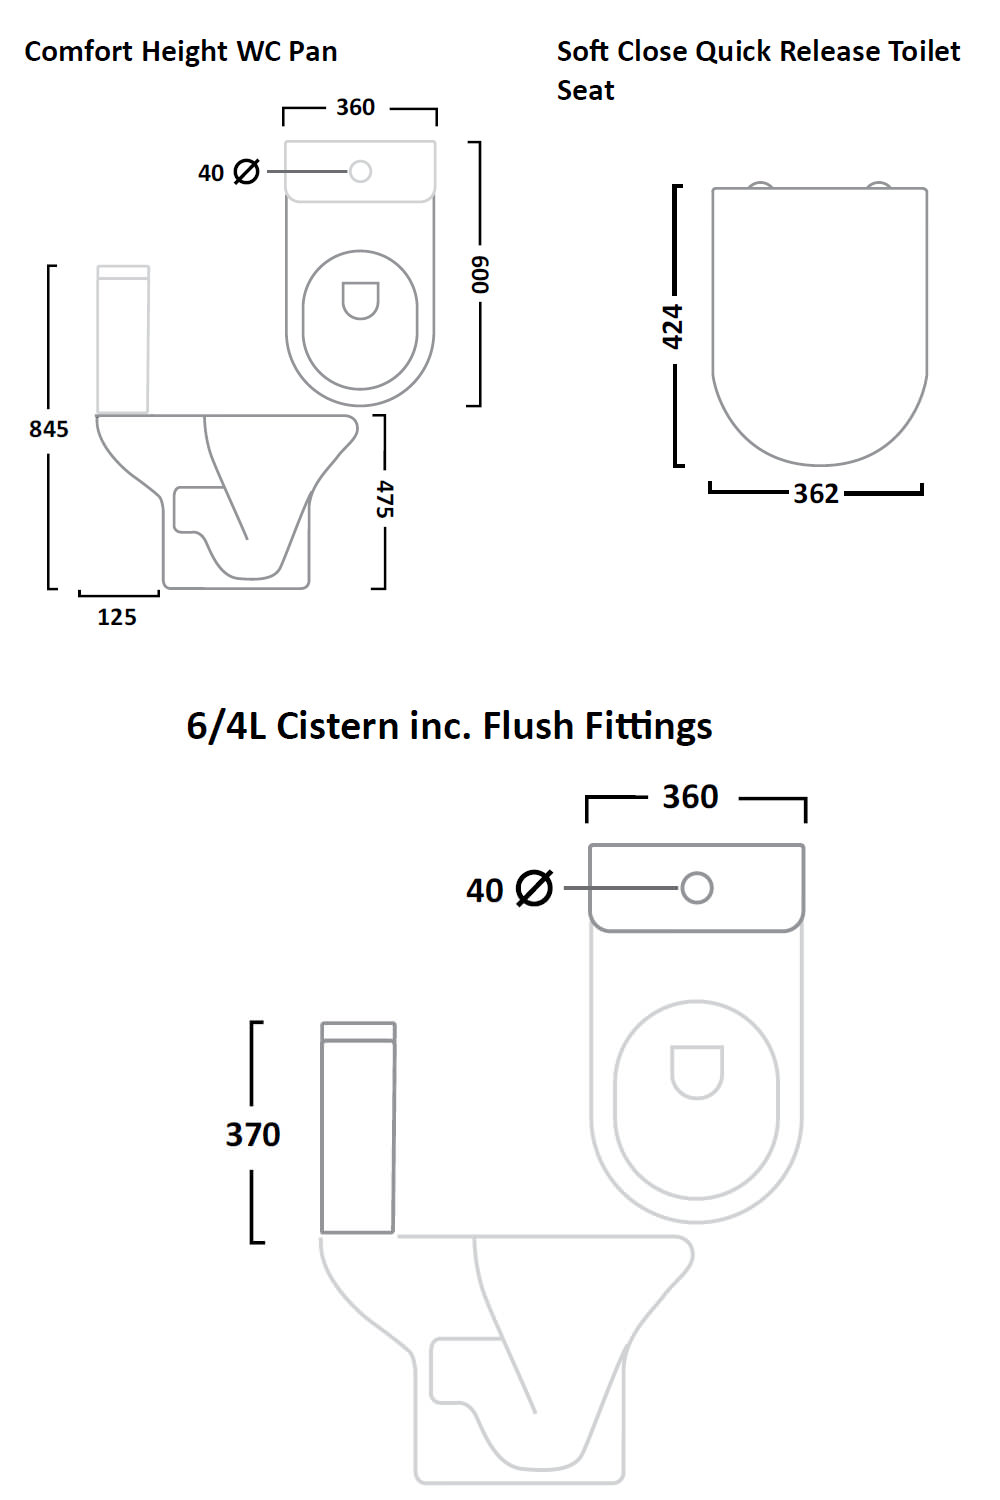 Tavistock Ion Comfort Height 600mm WC With Cistern And Toilet Seat    Technical drawing QS V26813   PC100S. Tavistock Ion Comfort Height 600mm WC With Cistern And Toilet Seat